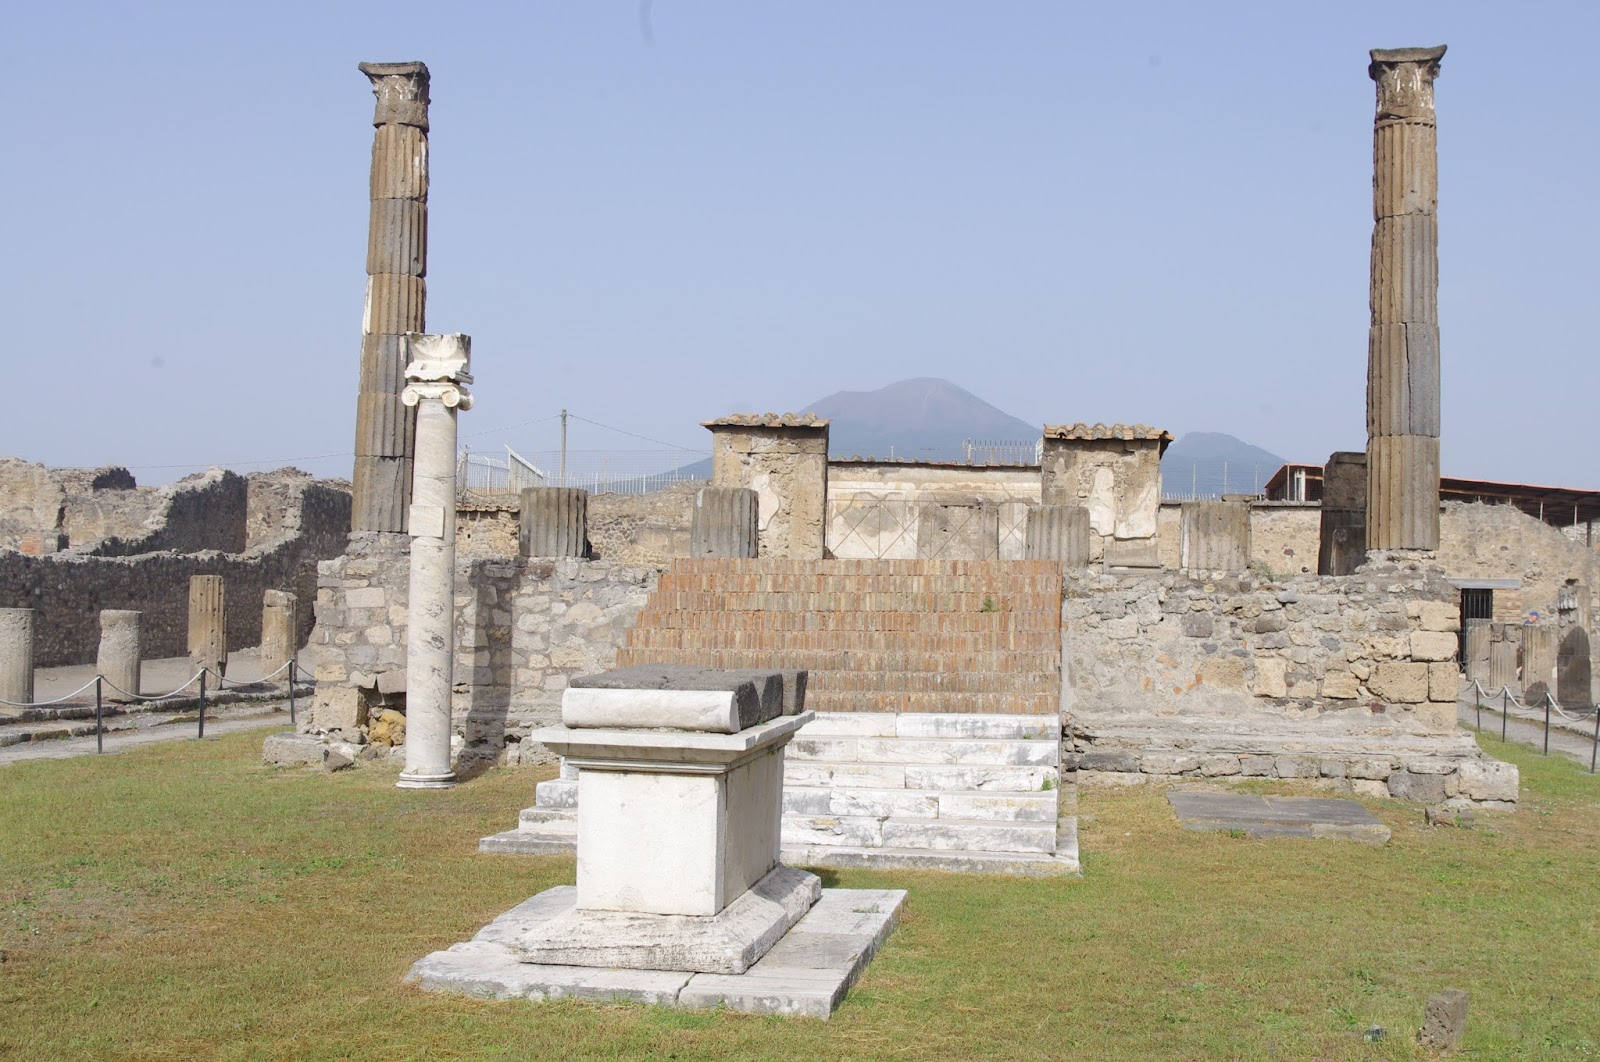 Ruins in Pompeii with Mt Vesuvius in background